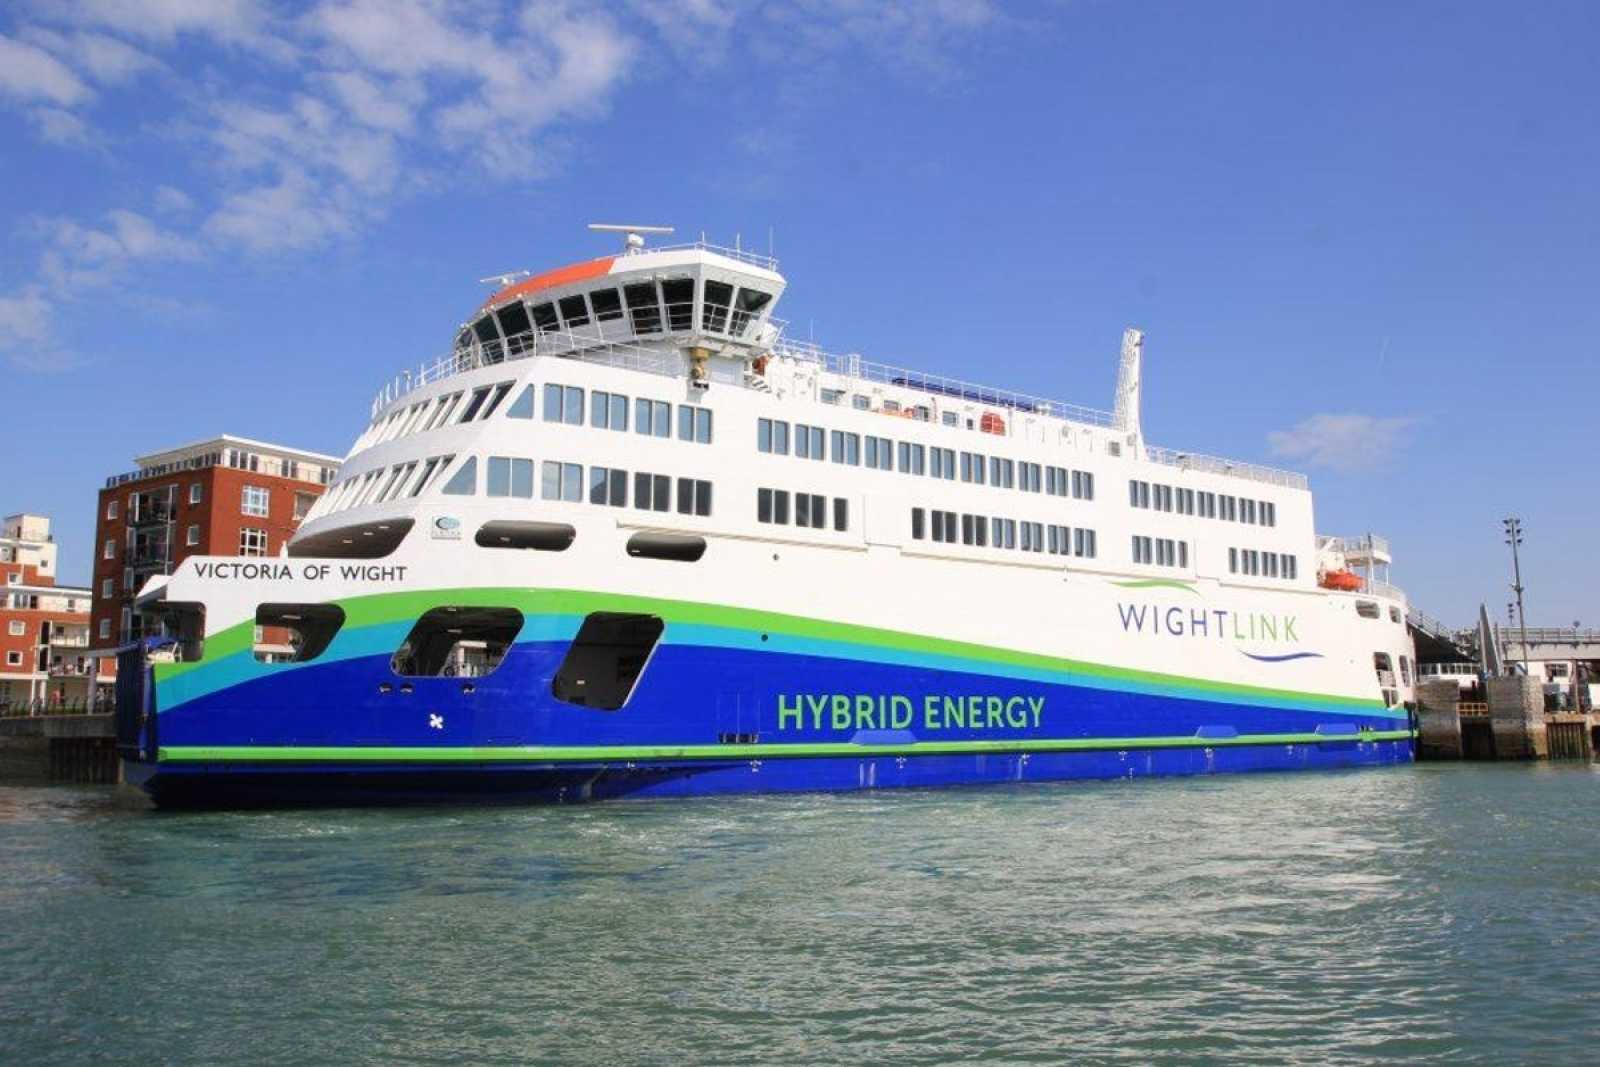 Victoria of Wight Hybrid ferry Wightlink pic